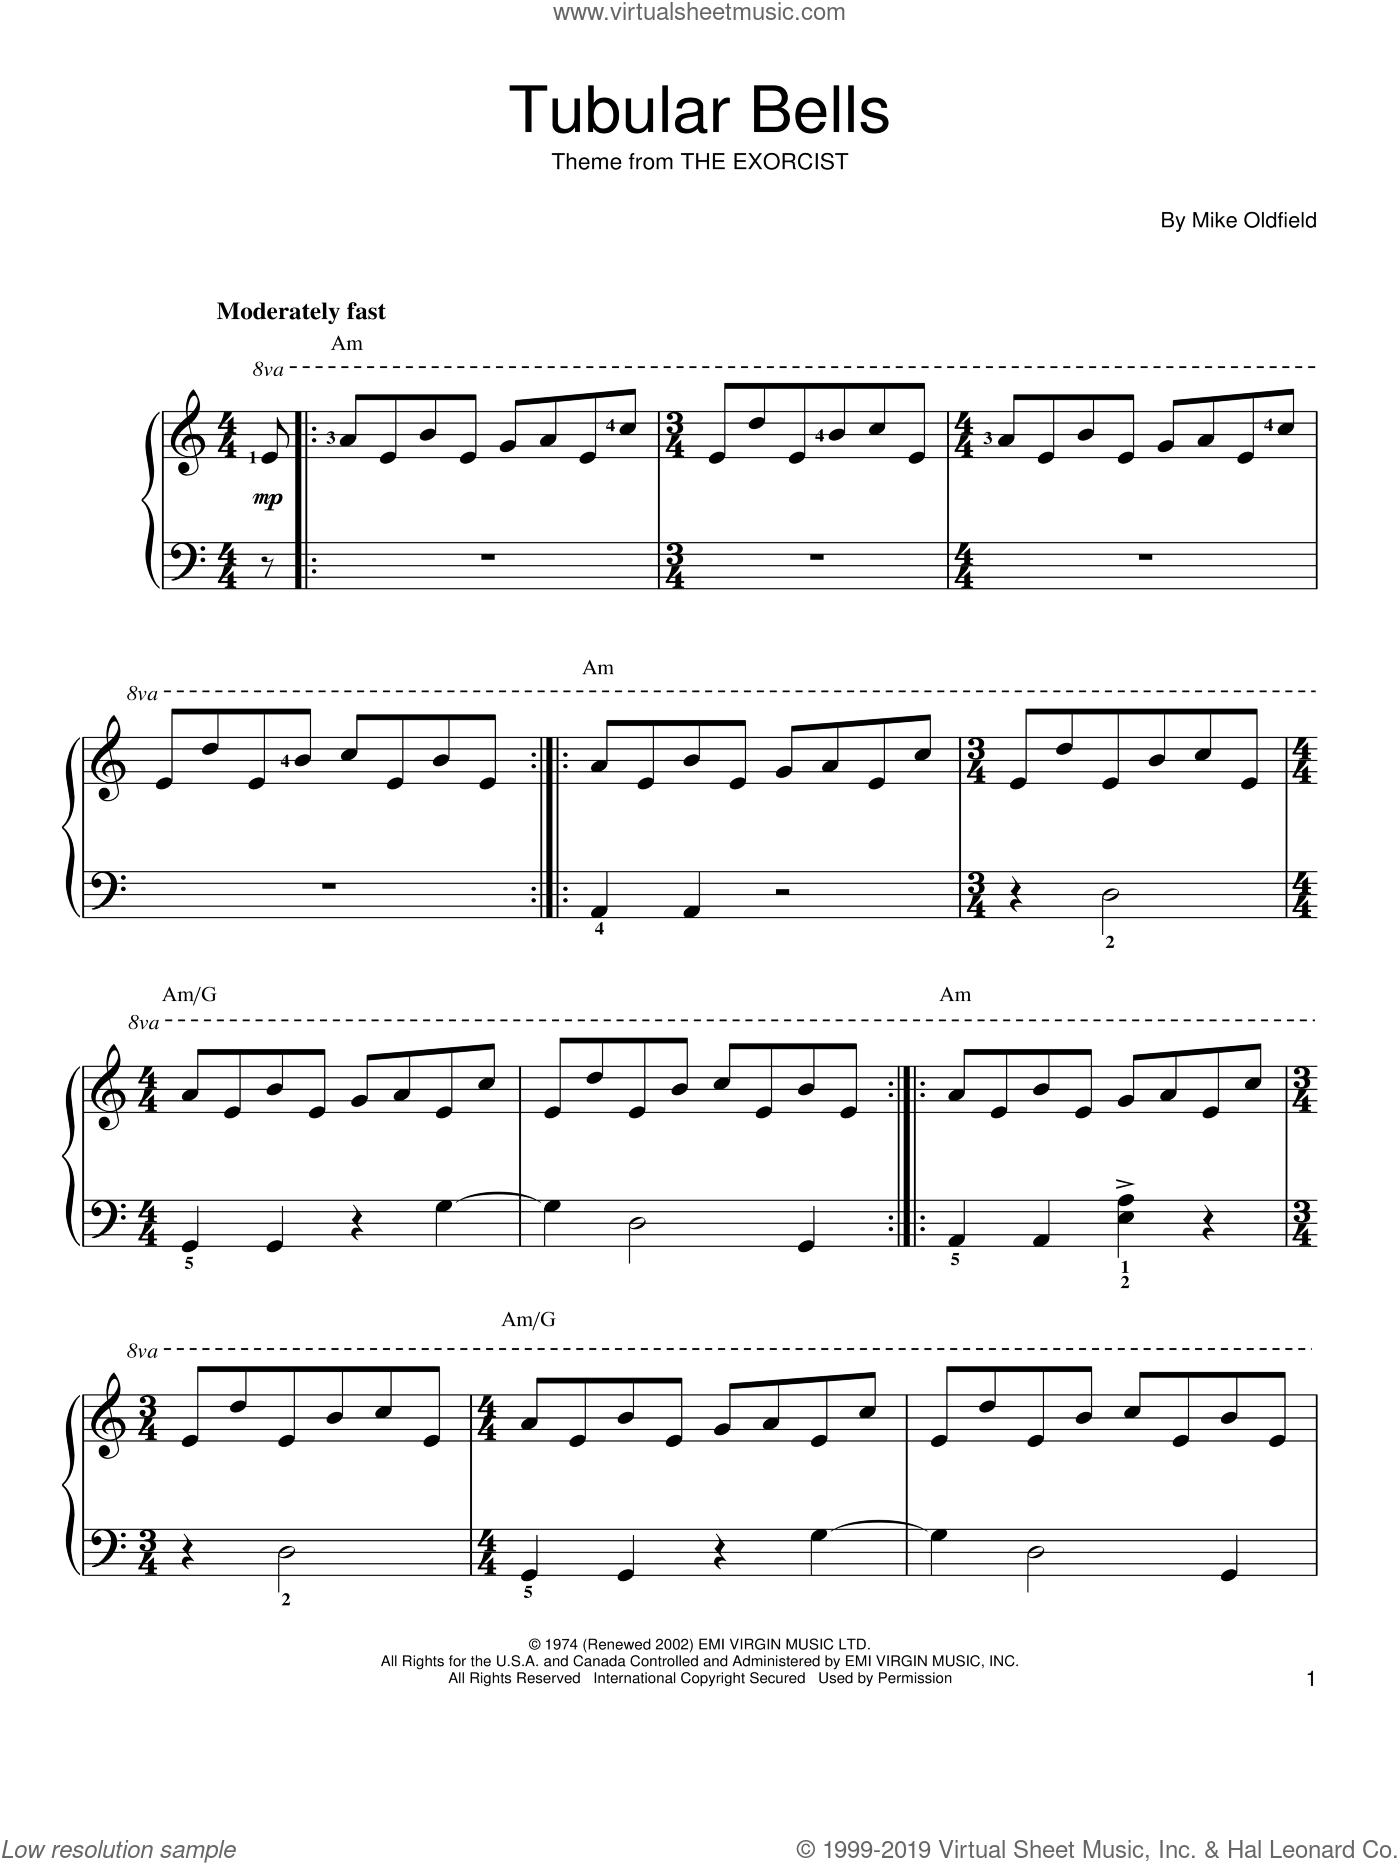 Tubular Bells sheet music for piano solo by Mike Oldfield. Score Image Preview.